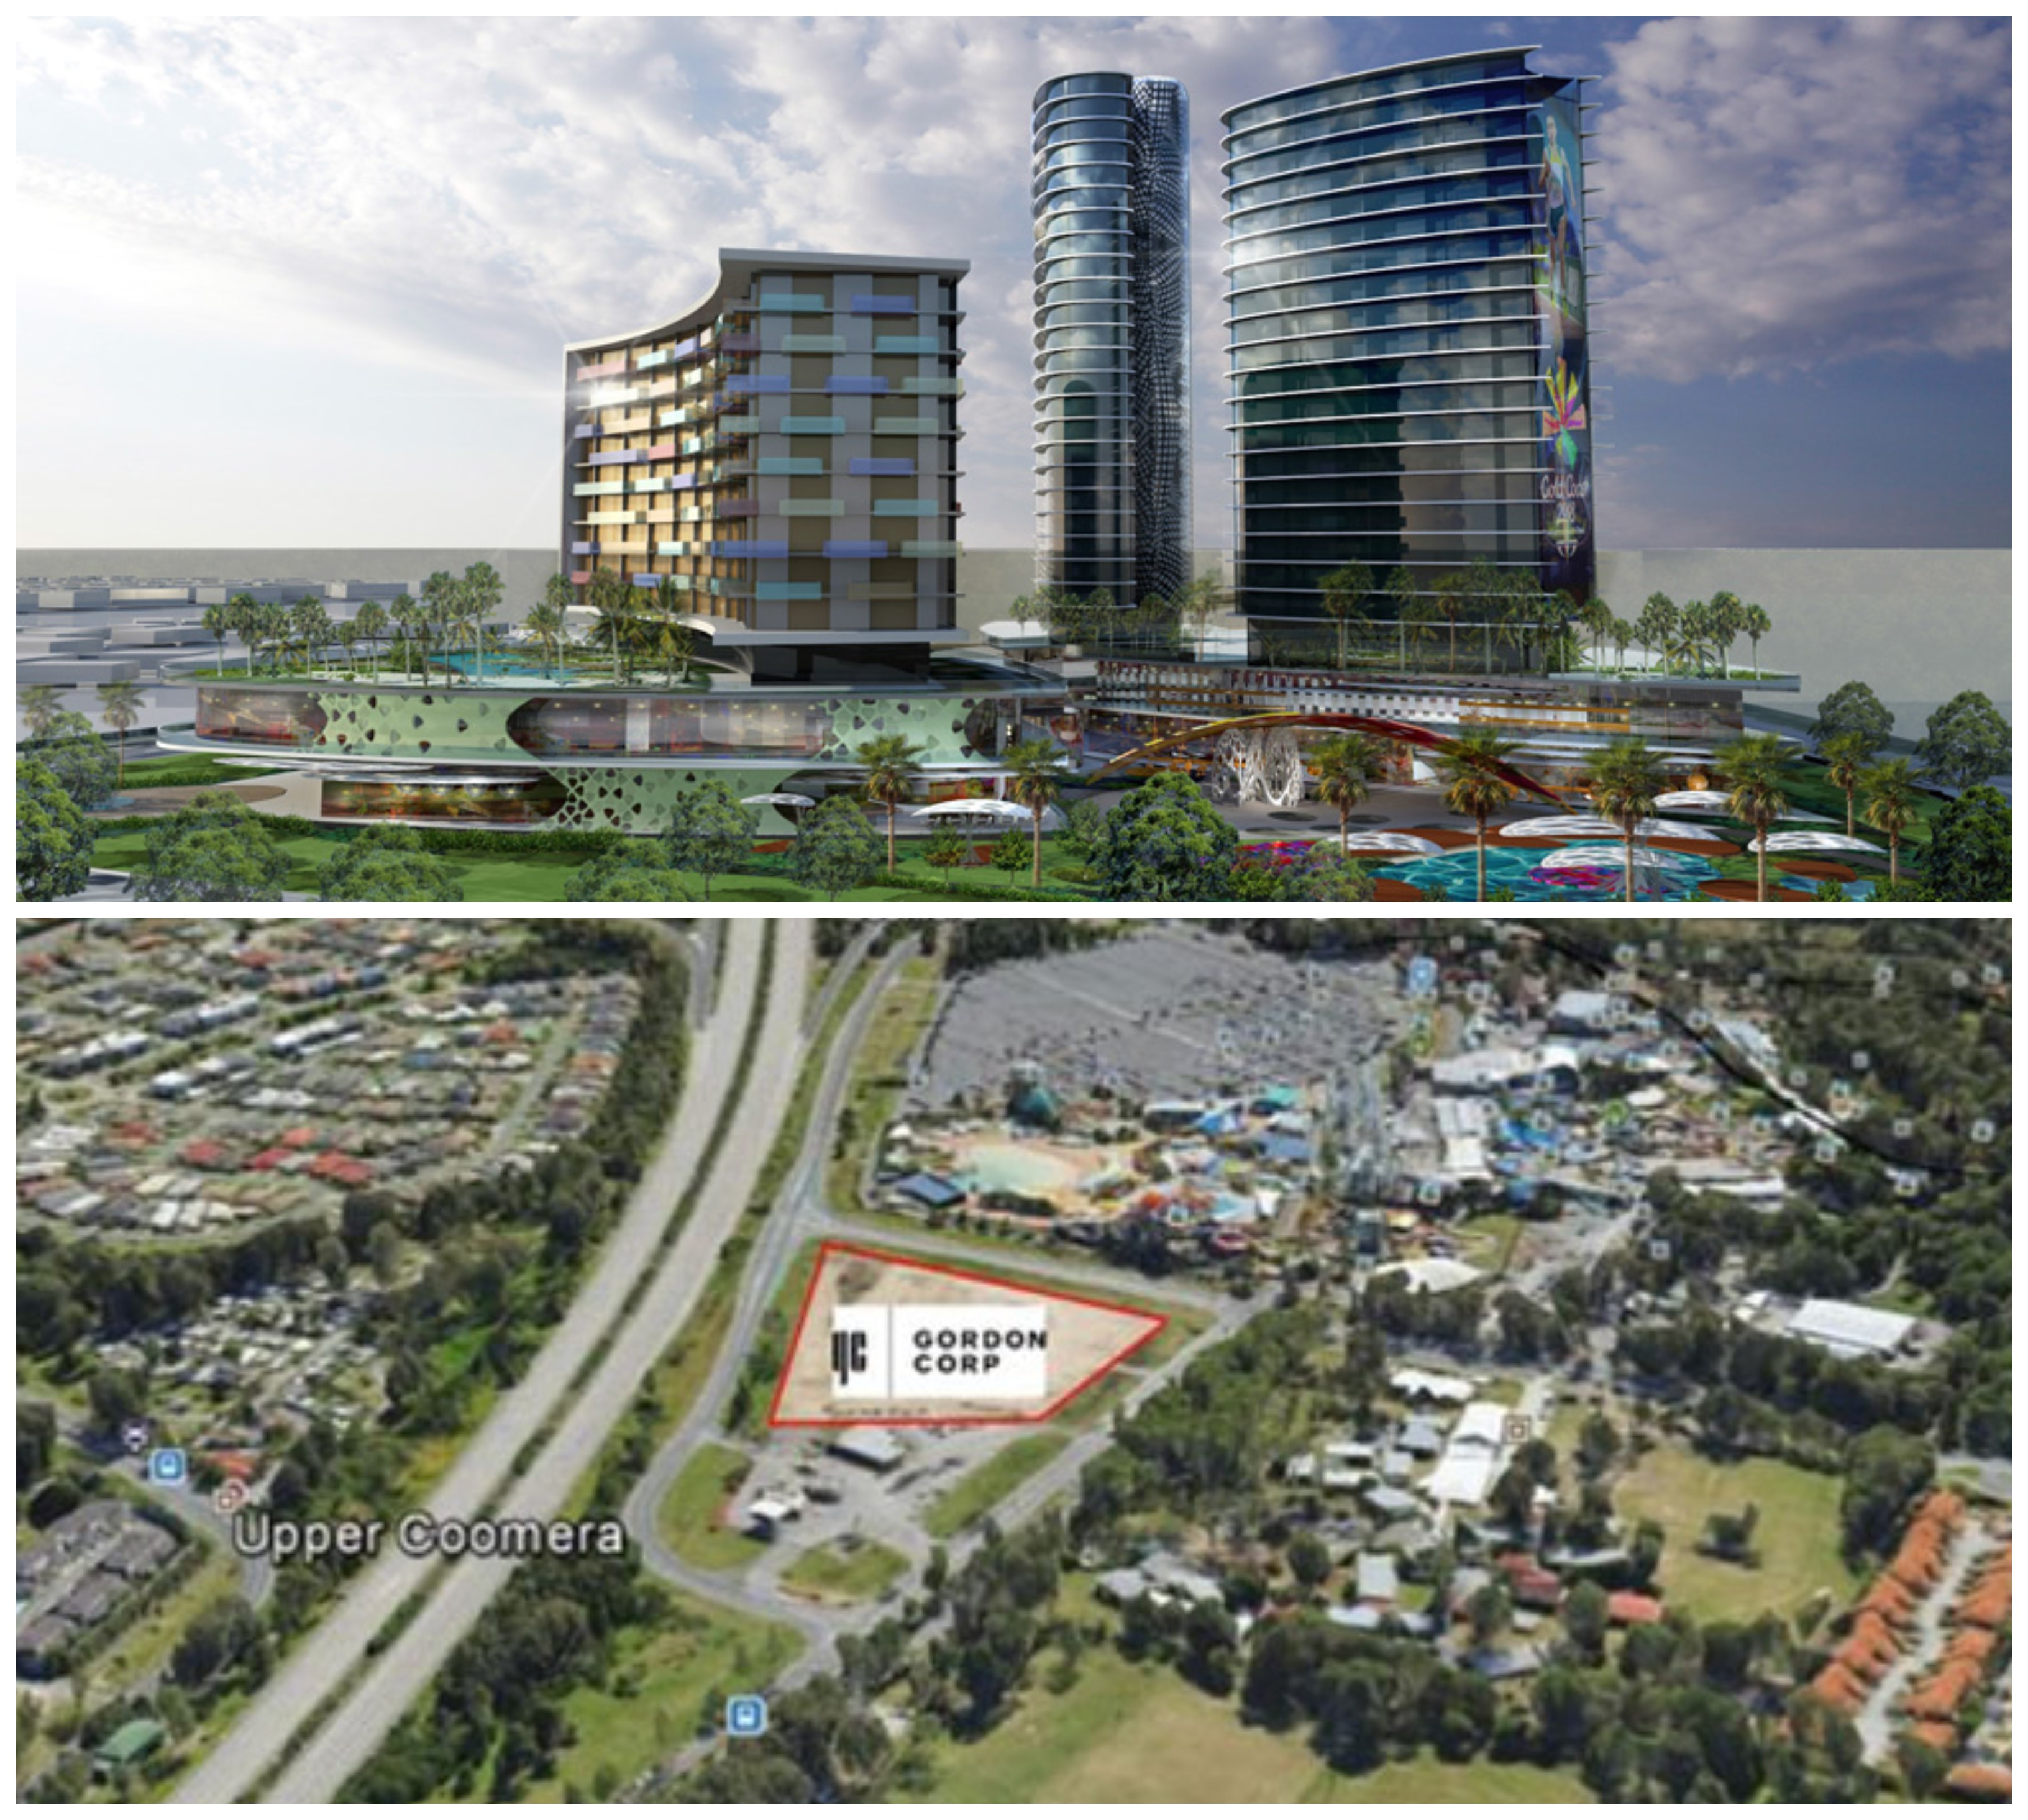 ▲ Gordon Corp have plans for a mixed use residential and resort development near Dreamworld on the Gold Coast. Image: Gordon Corp.